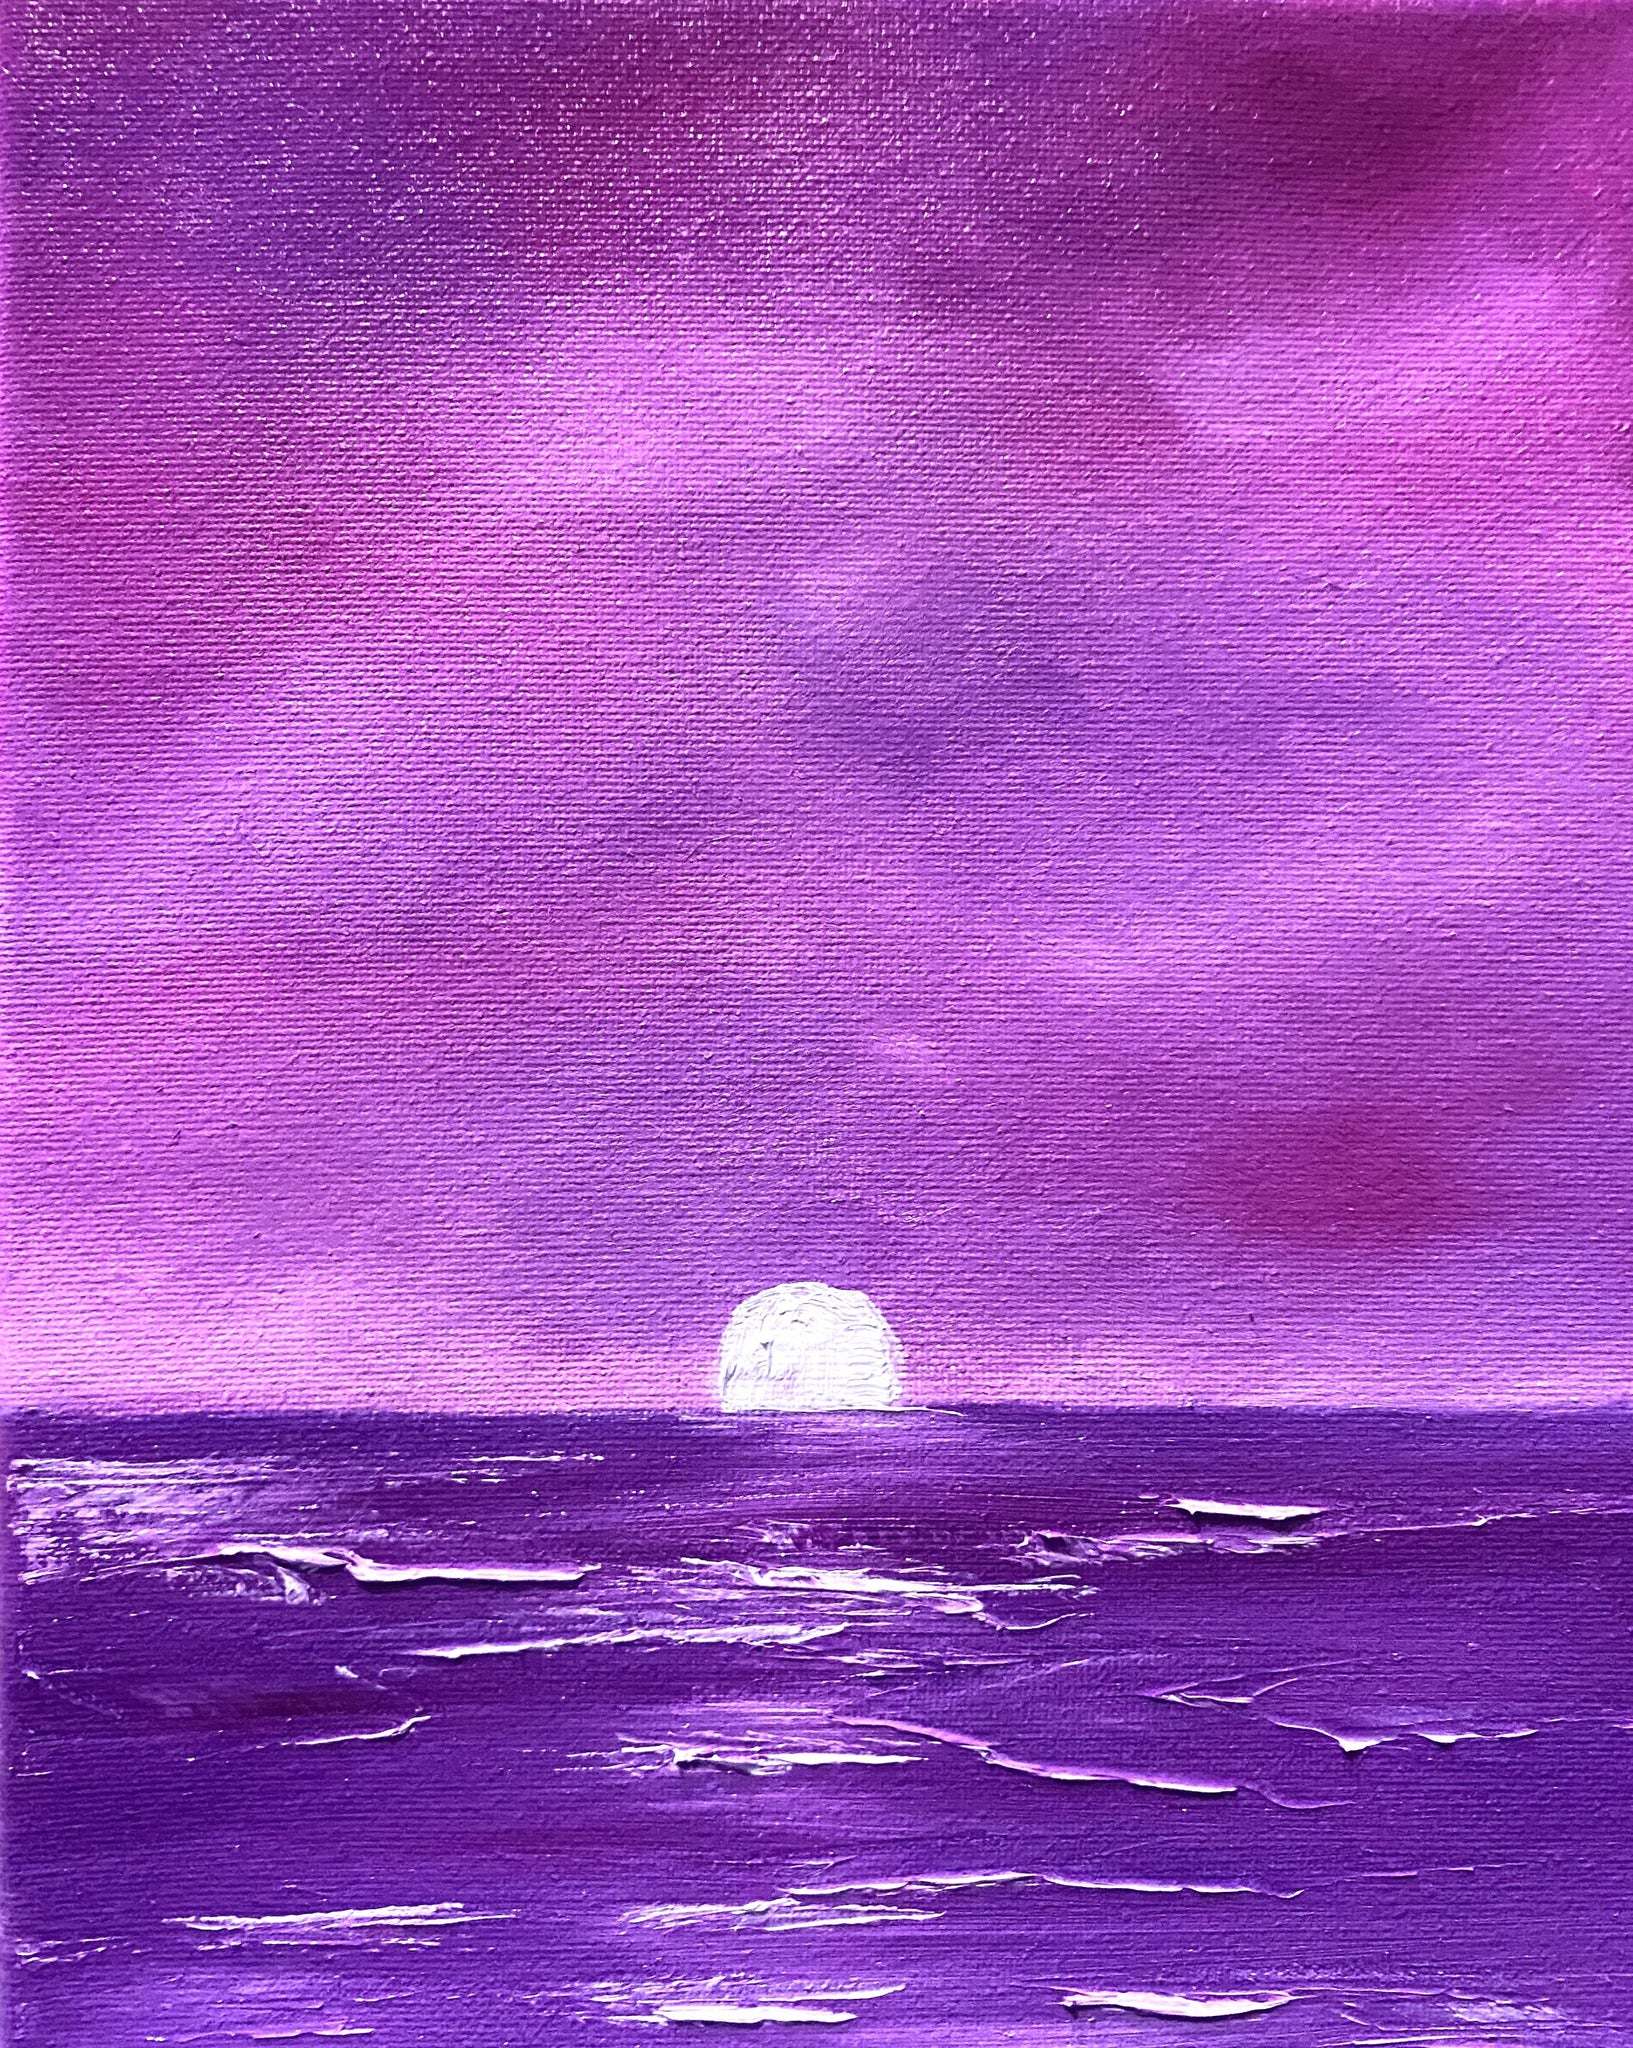 Fantasy seascape art at sunset in pink and purple